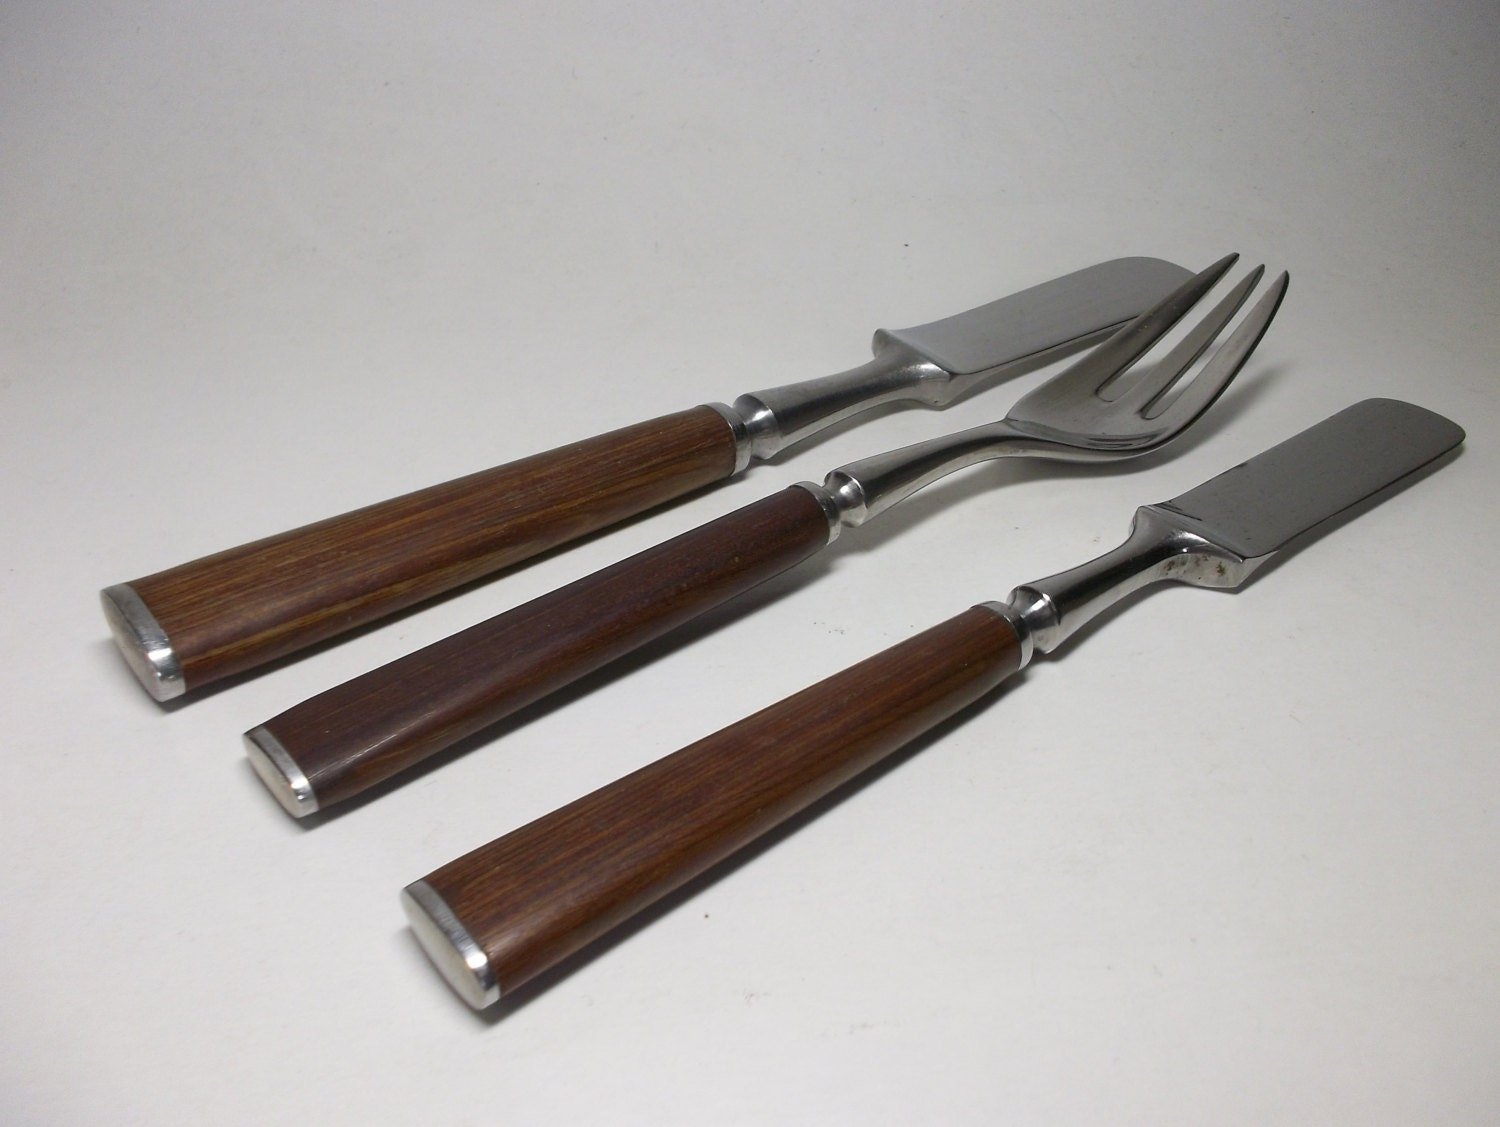 Jhq dansk anvil rare wood handle danish modern by rubbedeffect - Contemporary stainless flatware ...